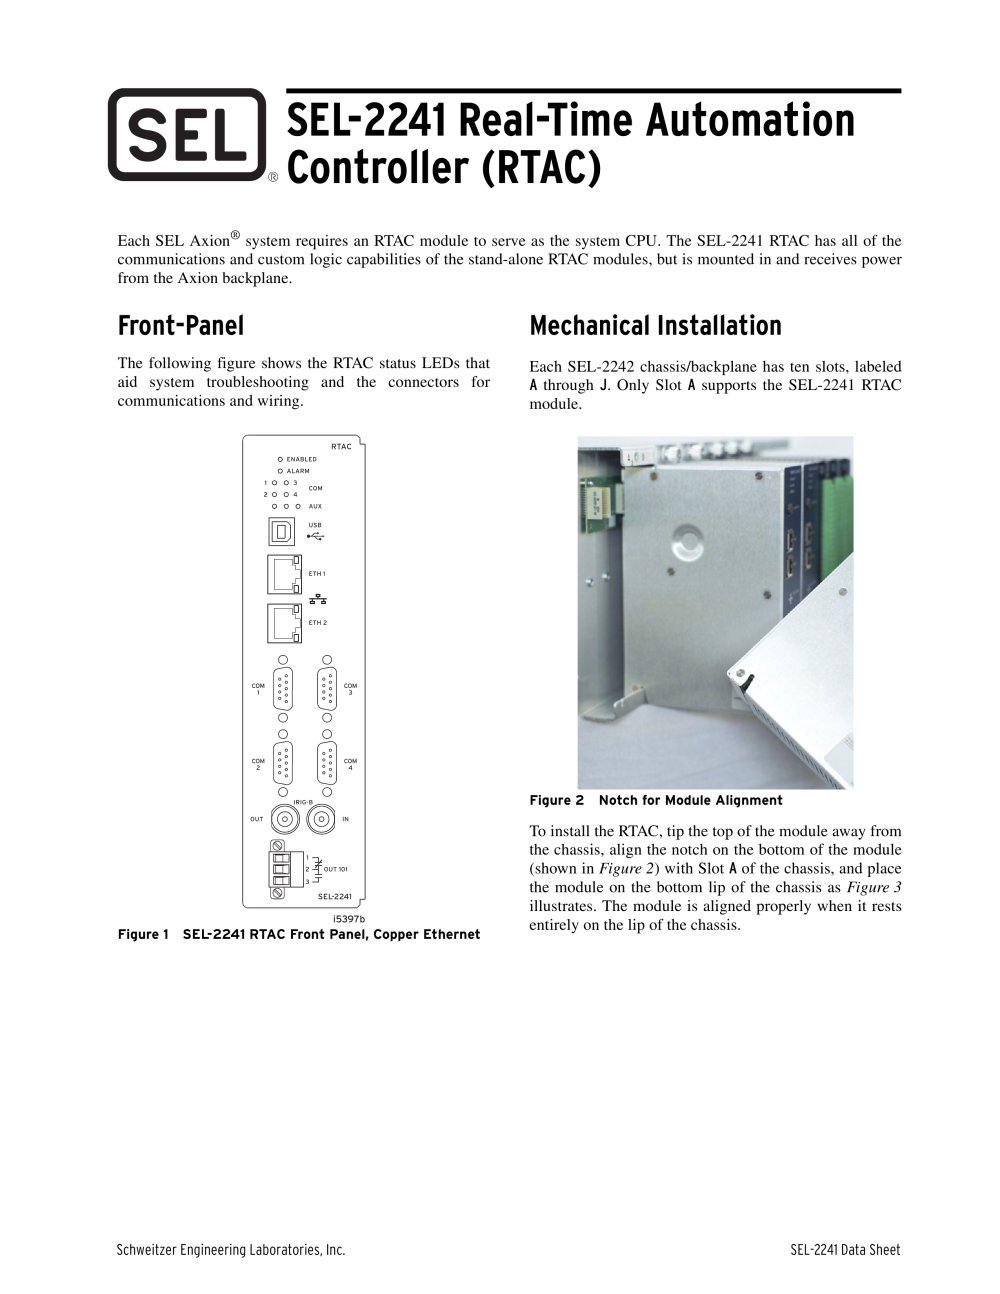 sel 2241 real time automation controller rtac 603708_1b sel 2241 real time automation controller (rtac) schweitzer sel 451 wiring diagram at n-0.co